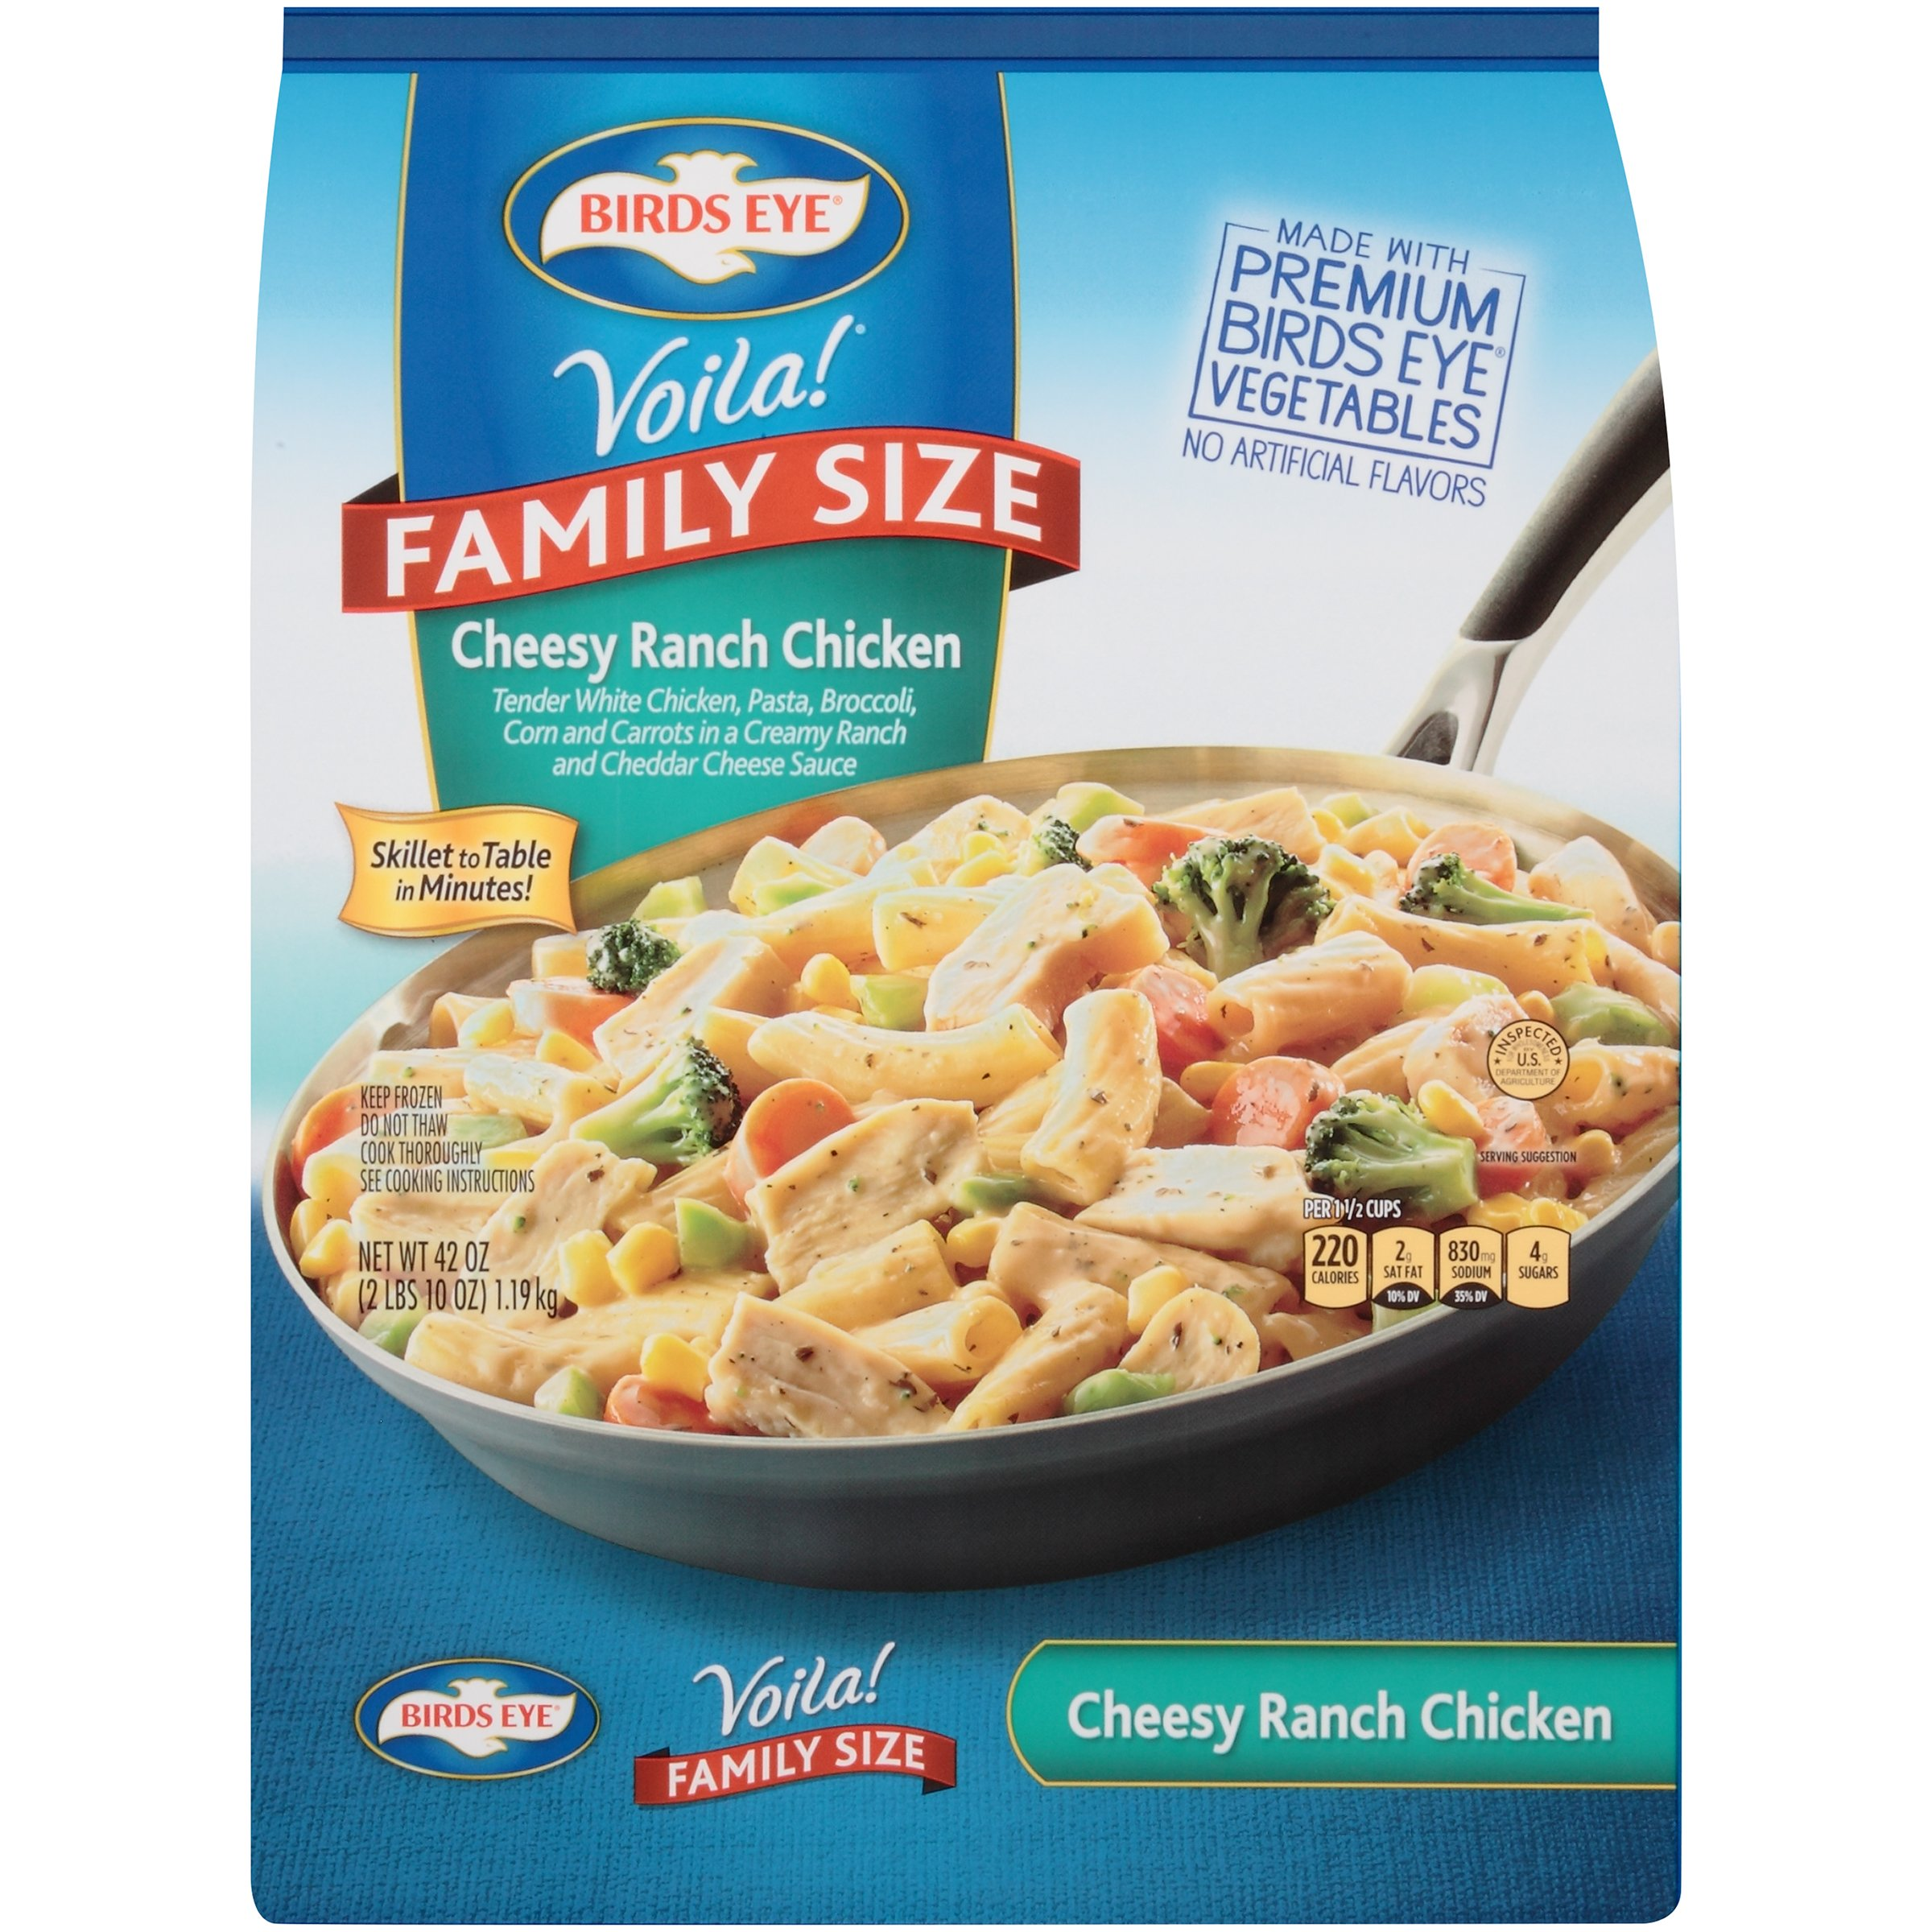 Birds Eye Voila Cheesy Ranch Chicken Family Size Shop Entrees Sides At H E B